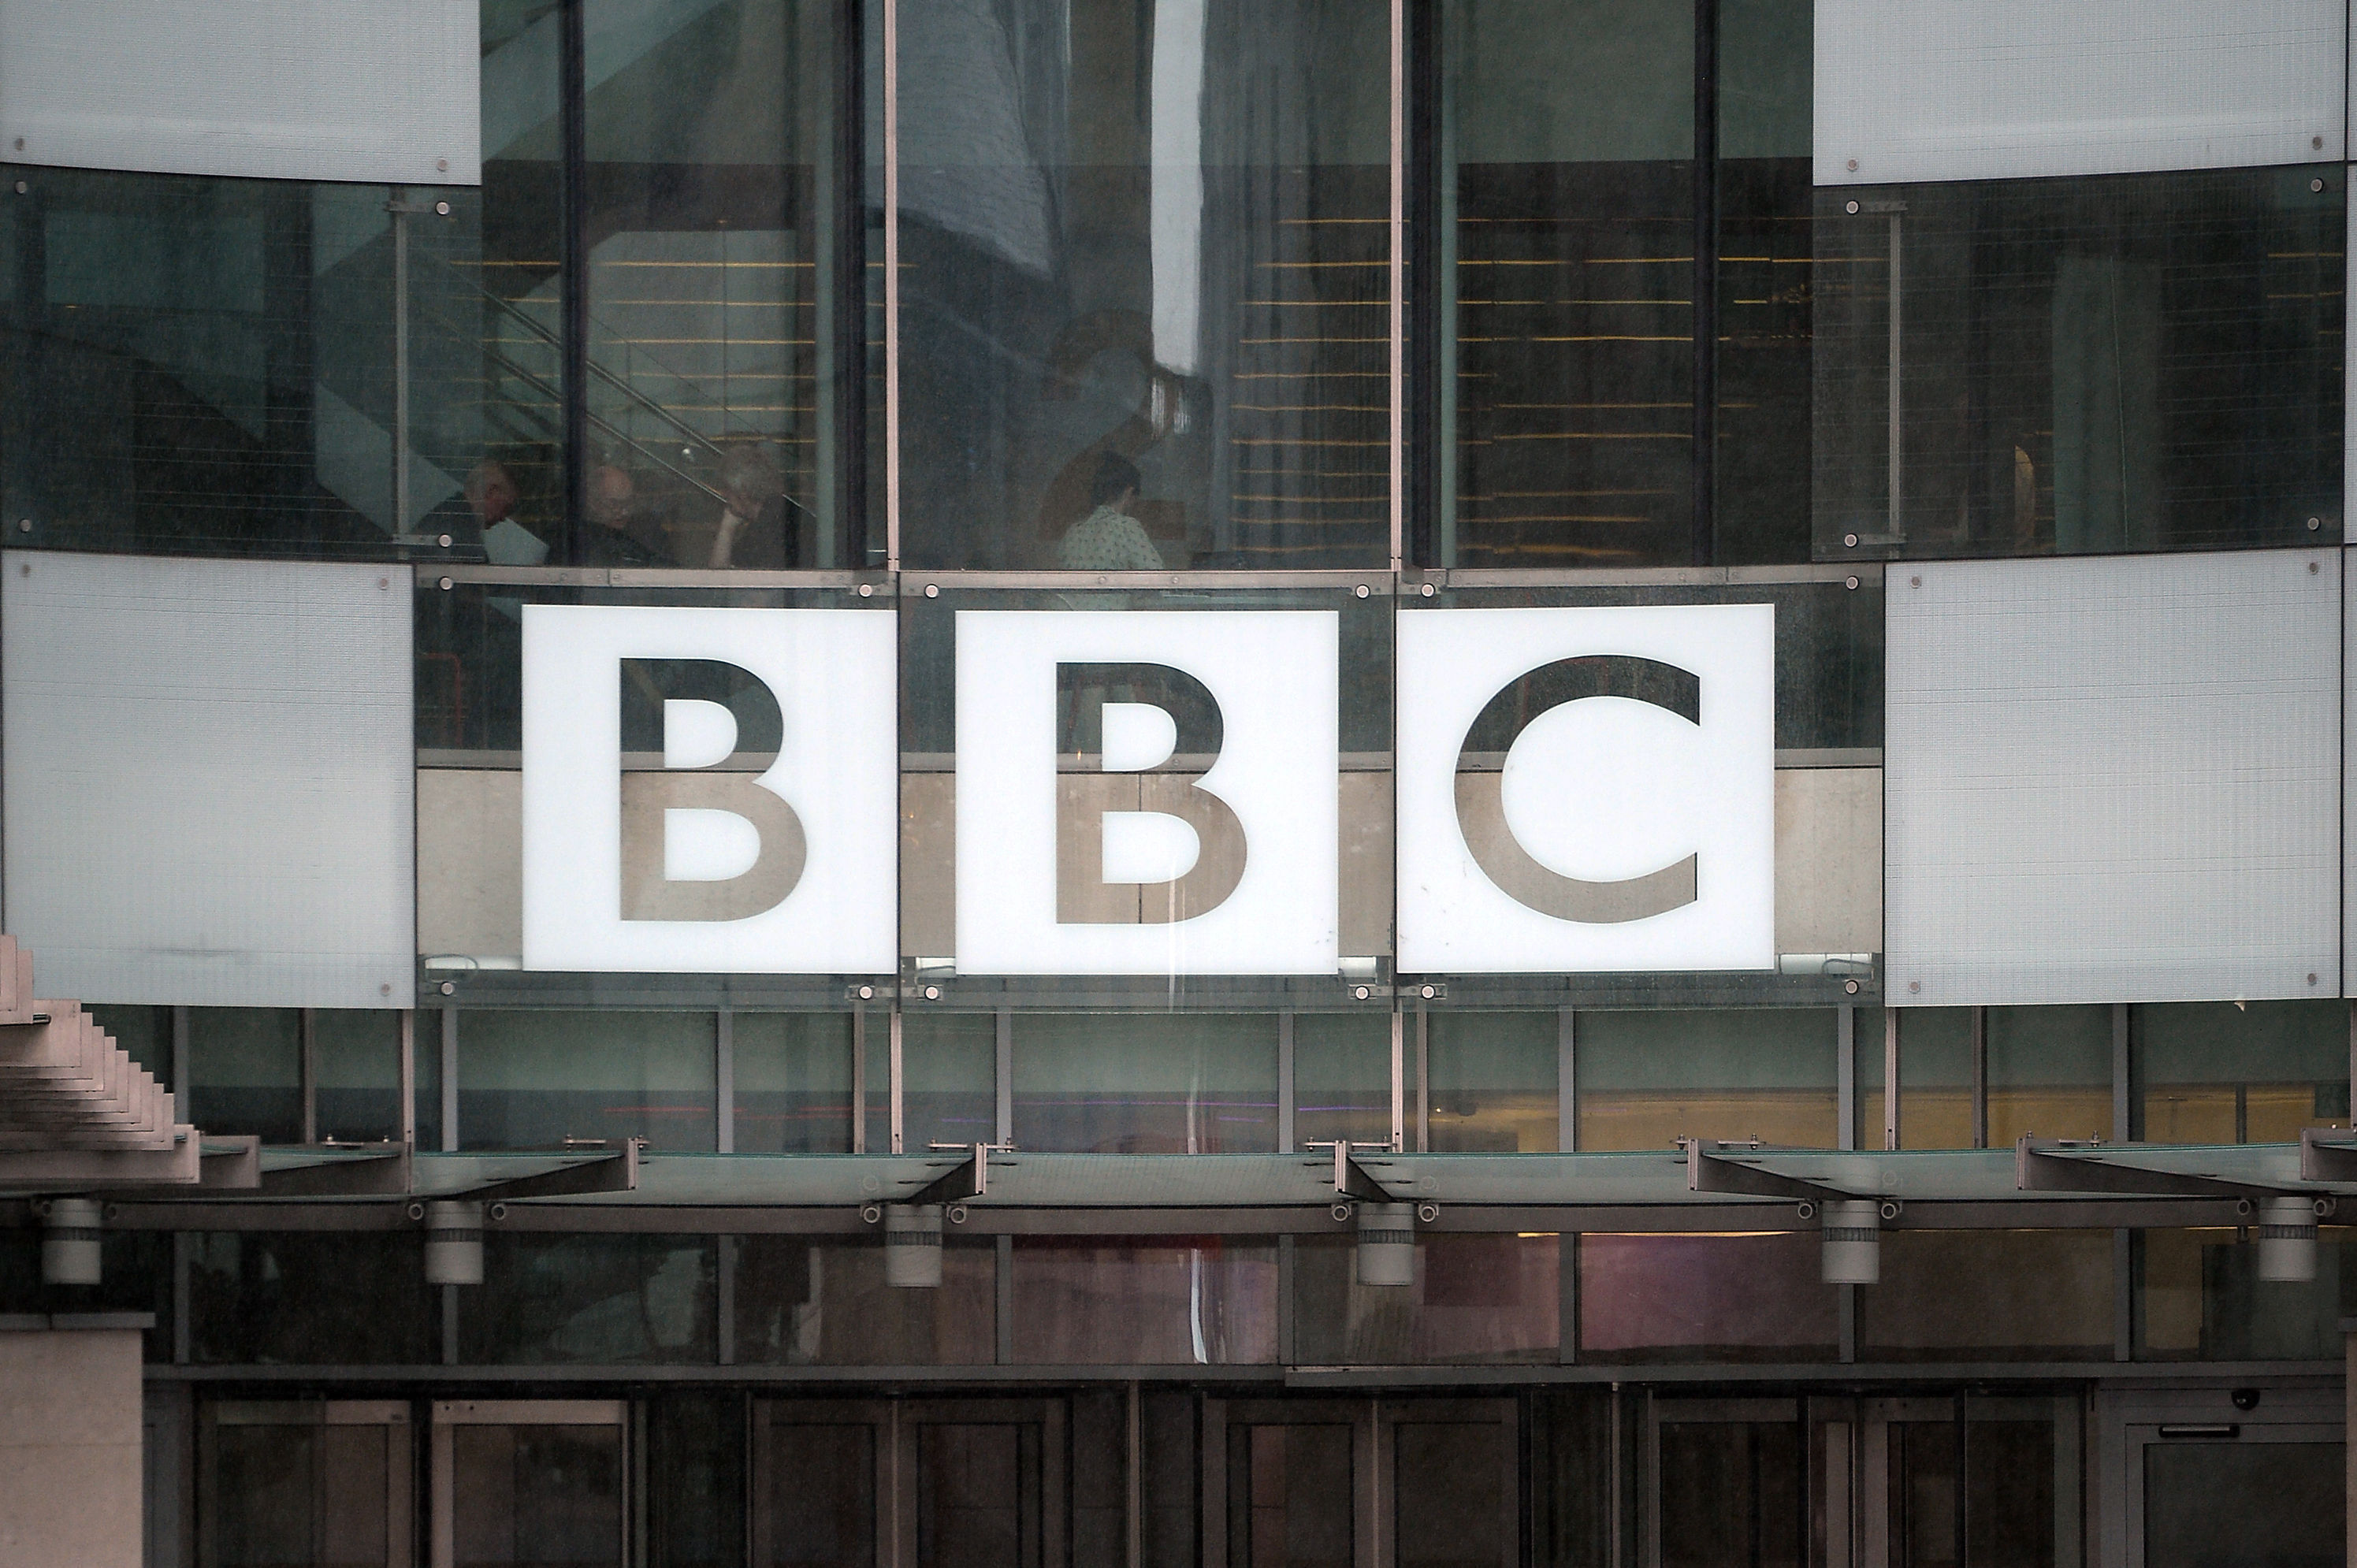 BBC quotas on original programming rise under new Ofcom rules